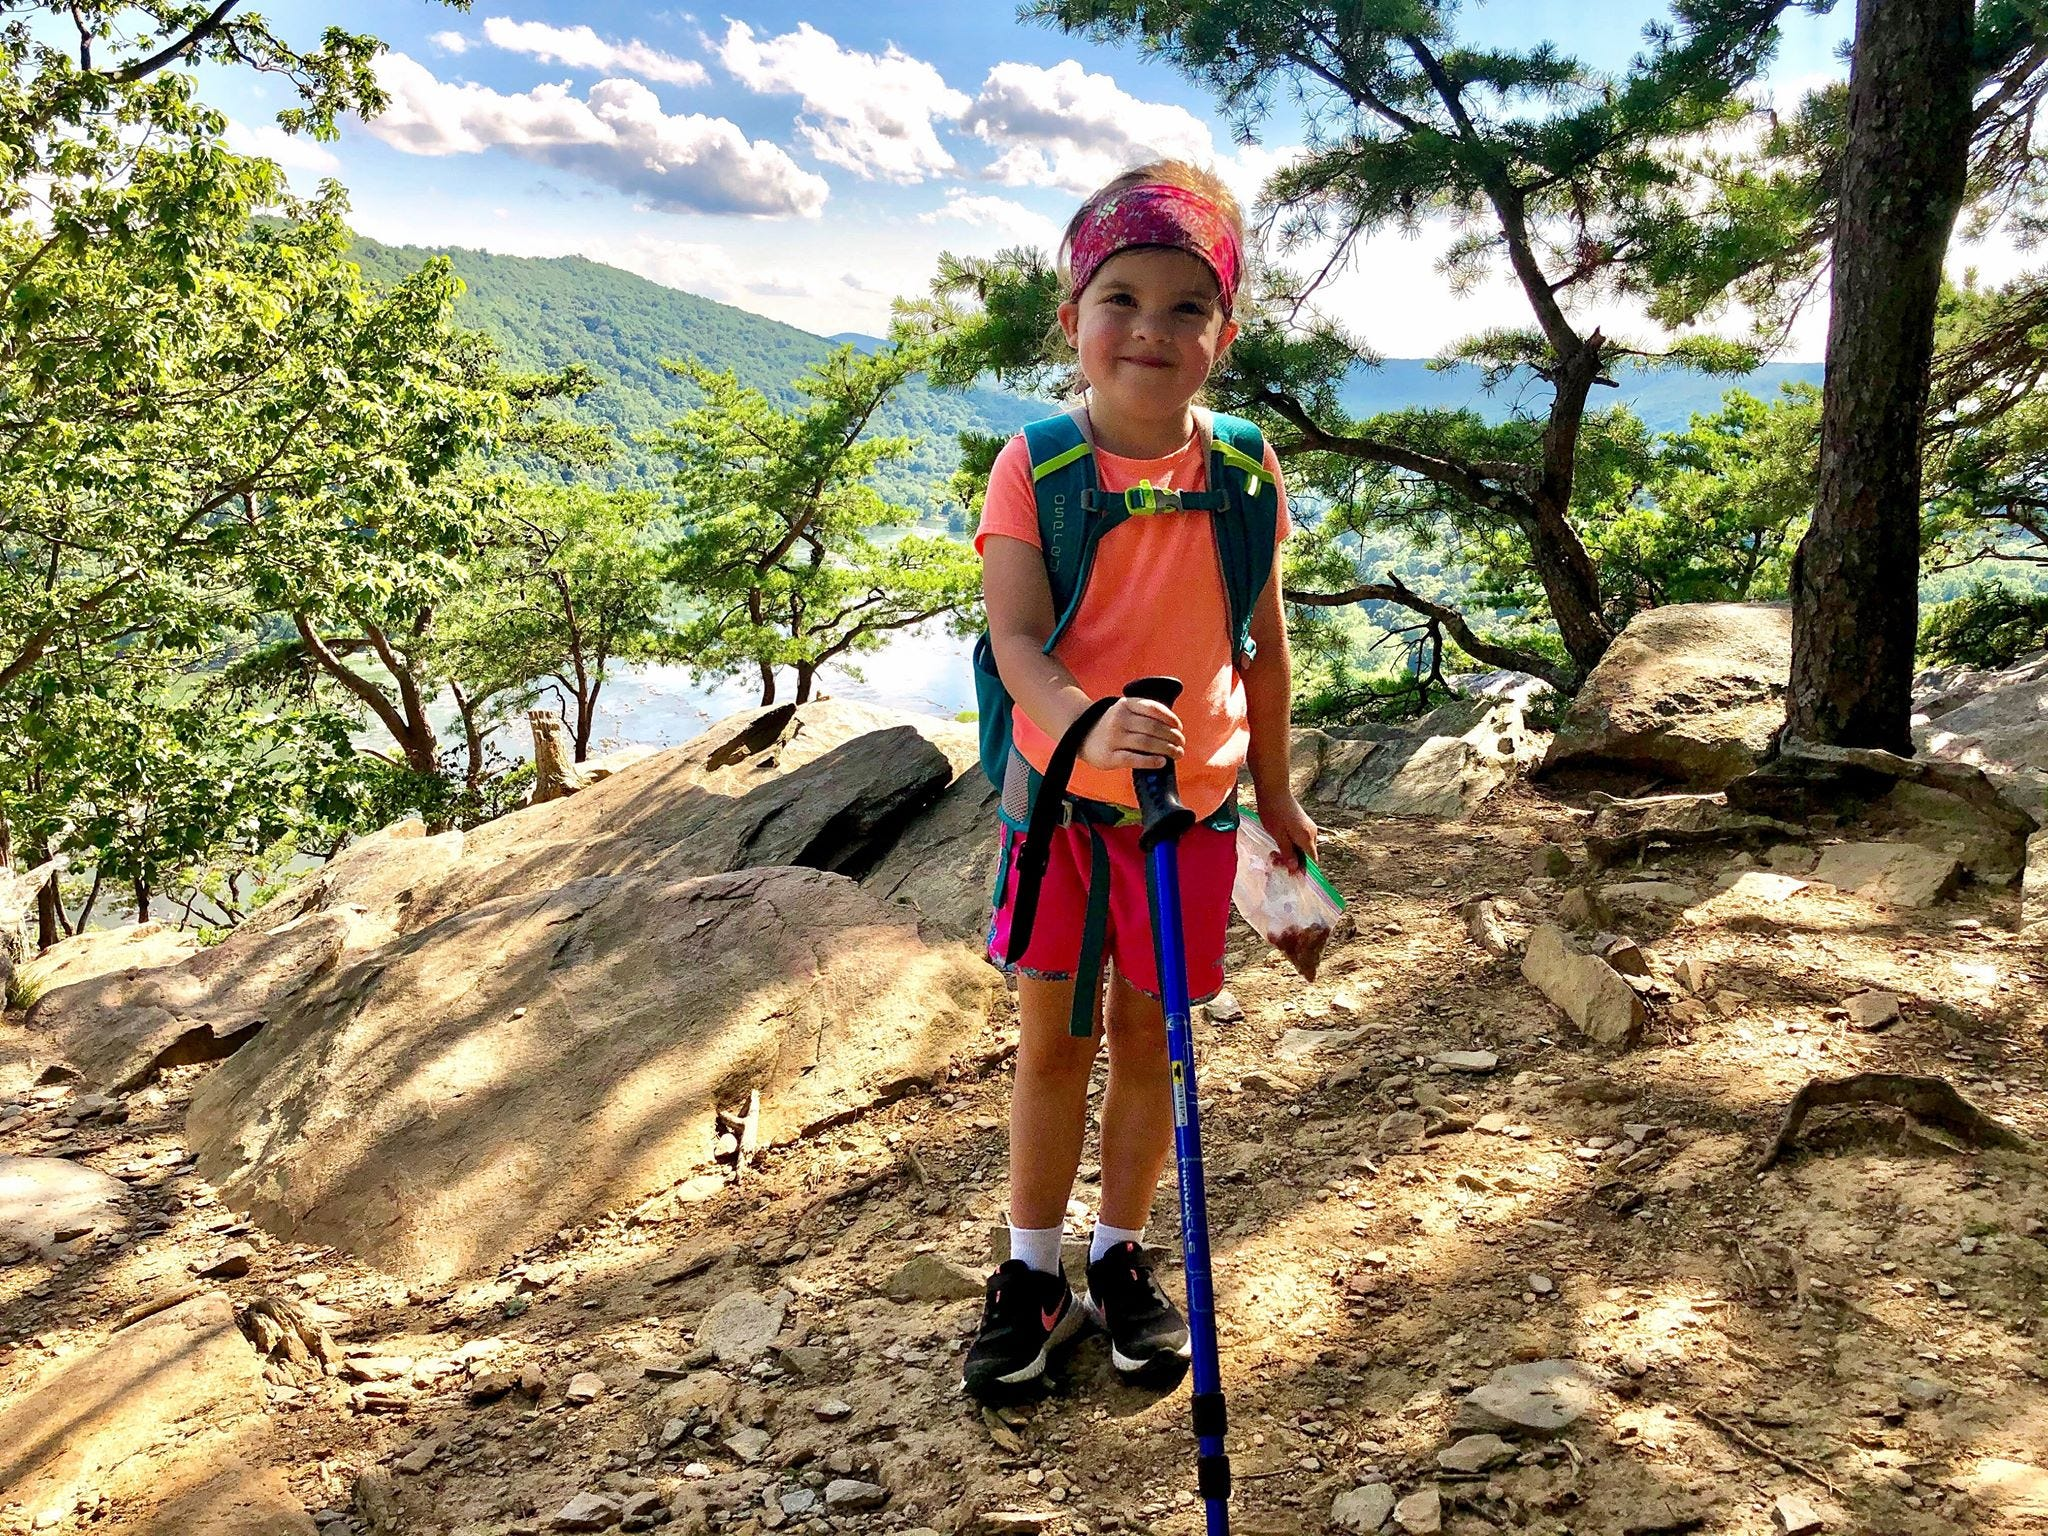 Slide 3 of 16: Julia Hipp, 4, of Williamsport, Md. at Weverton Cliffs on the Appalachian Trail in Maryland.